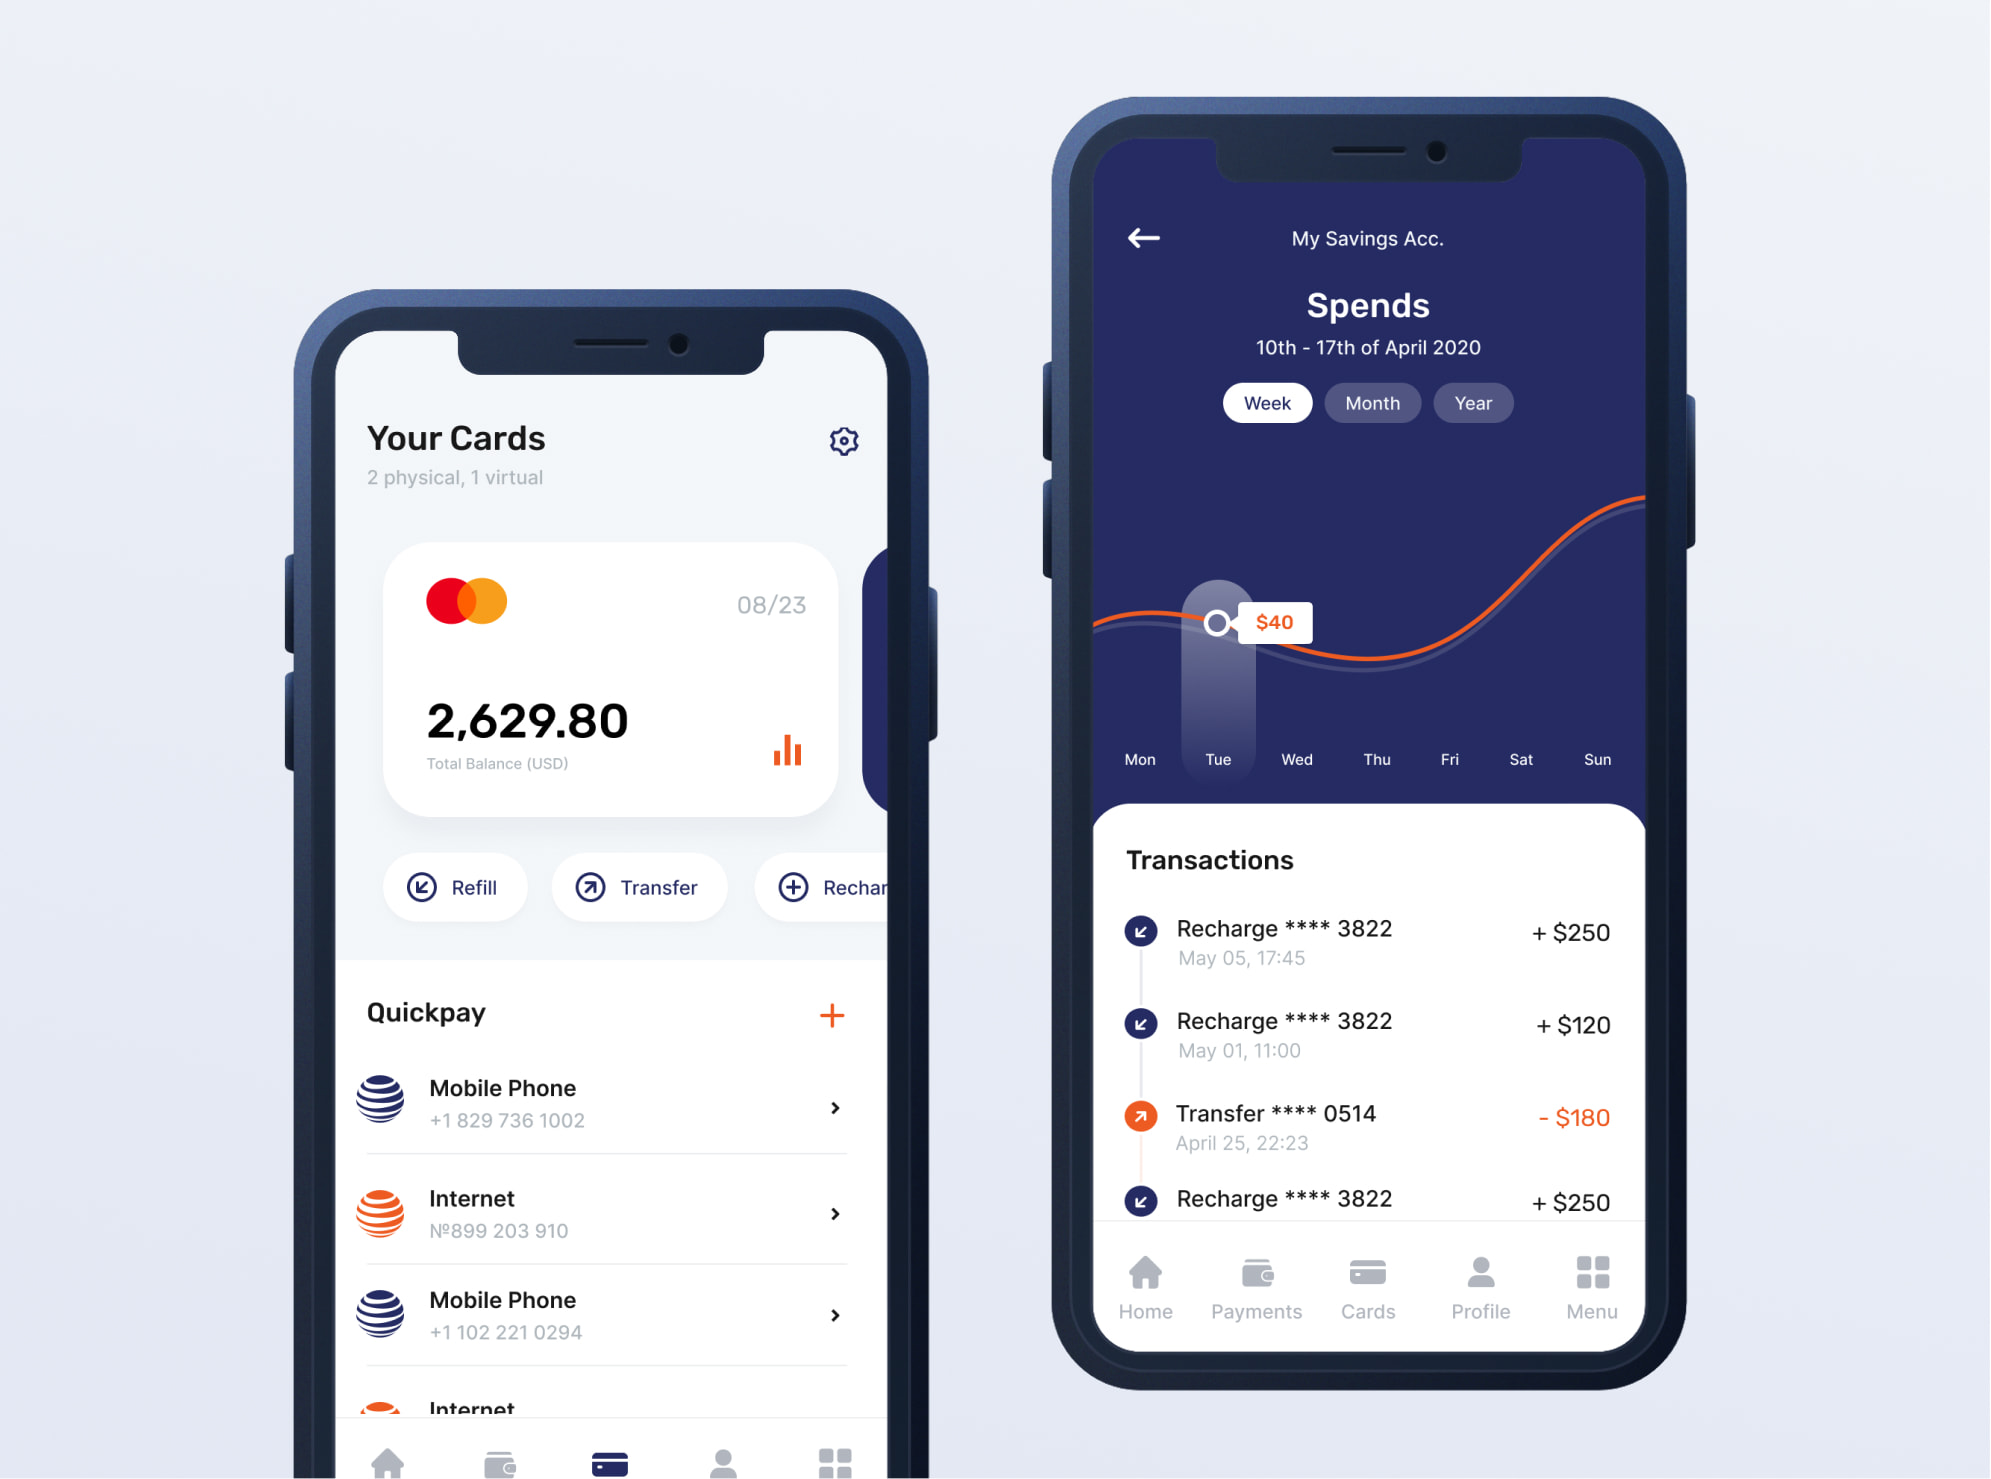 Case study for mobile app development in banking area